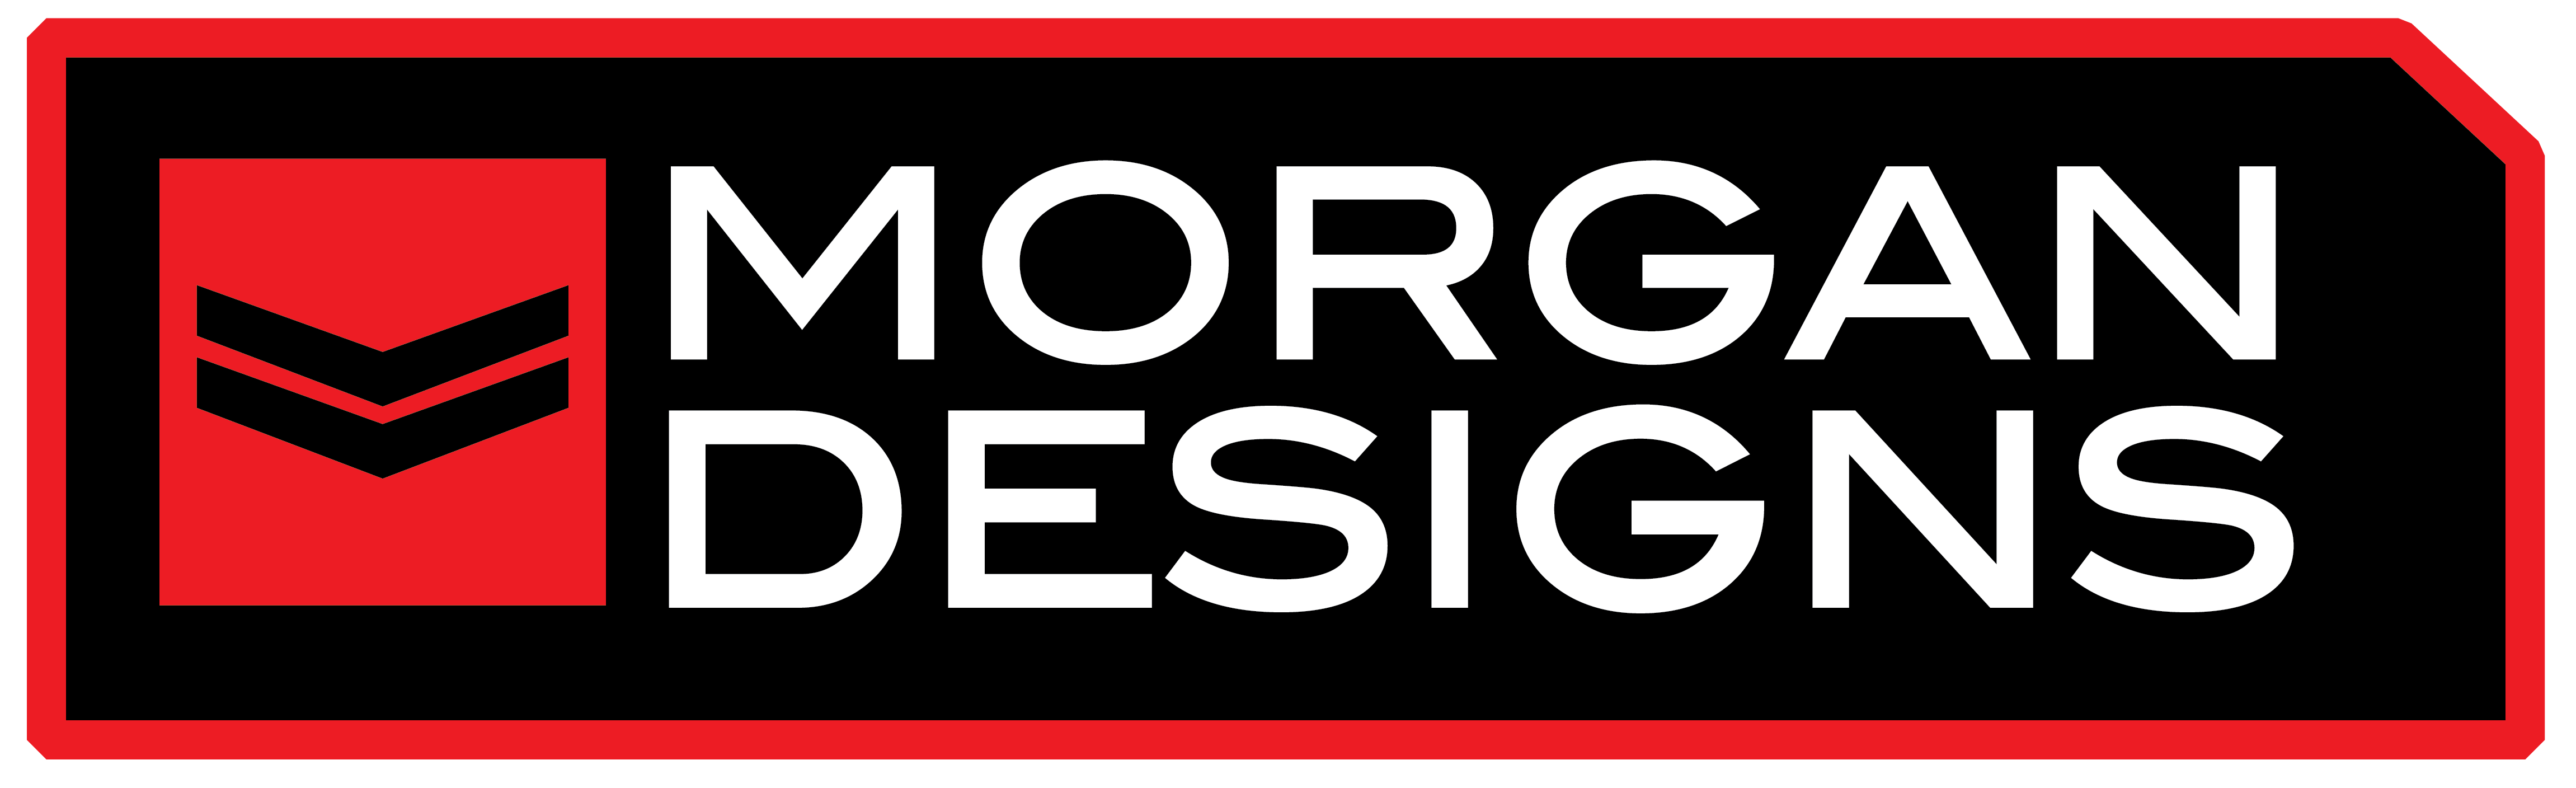 Morgan Designs | Redding CA, Graphic Designer, Digital Artist Illustrator